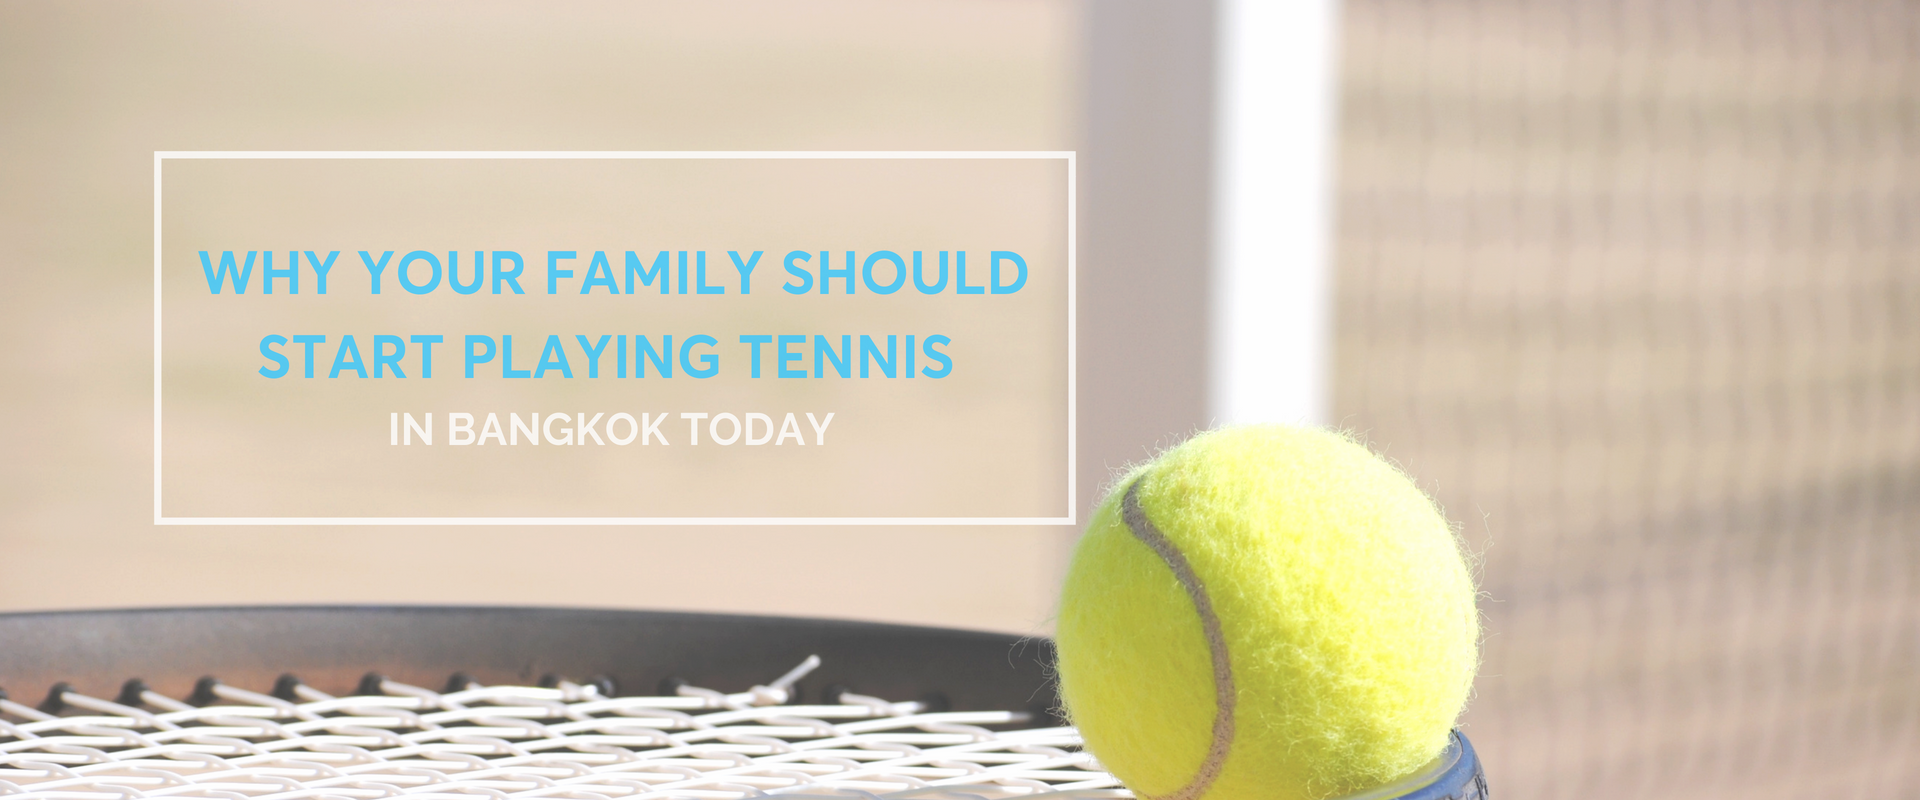 Why Your Family Should Start Playing Tennis in Bangkok Today banner (2)